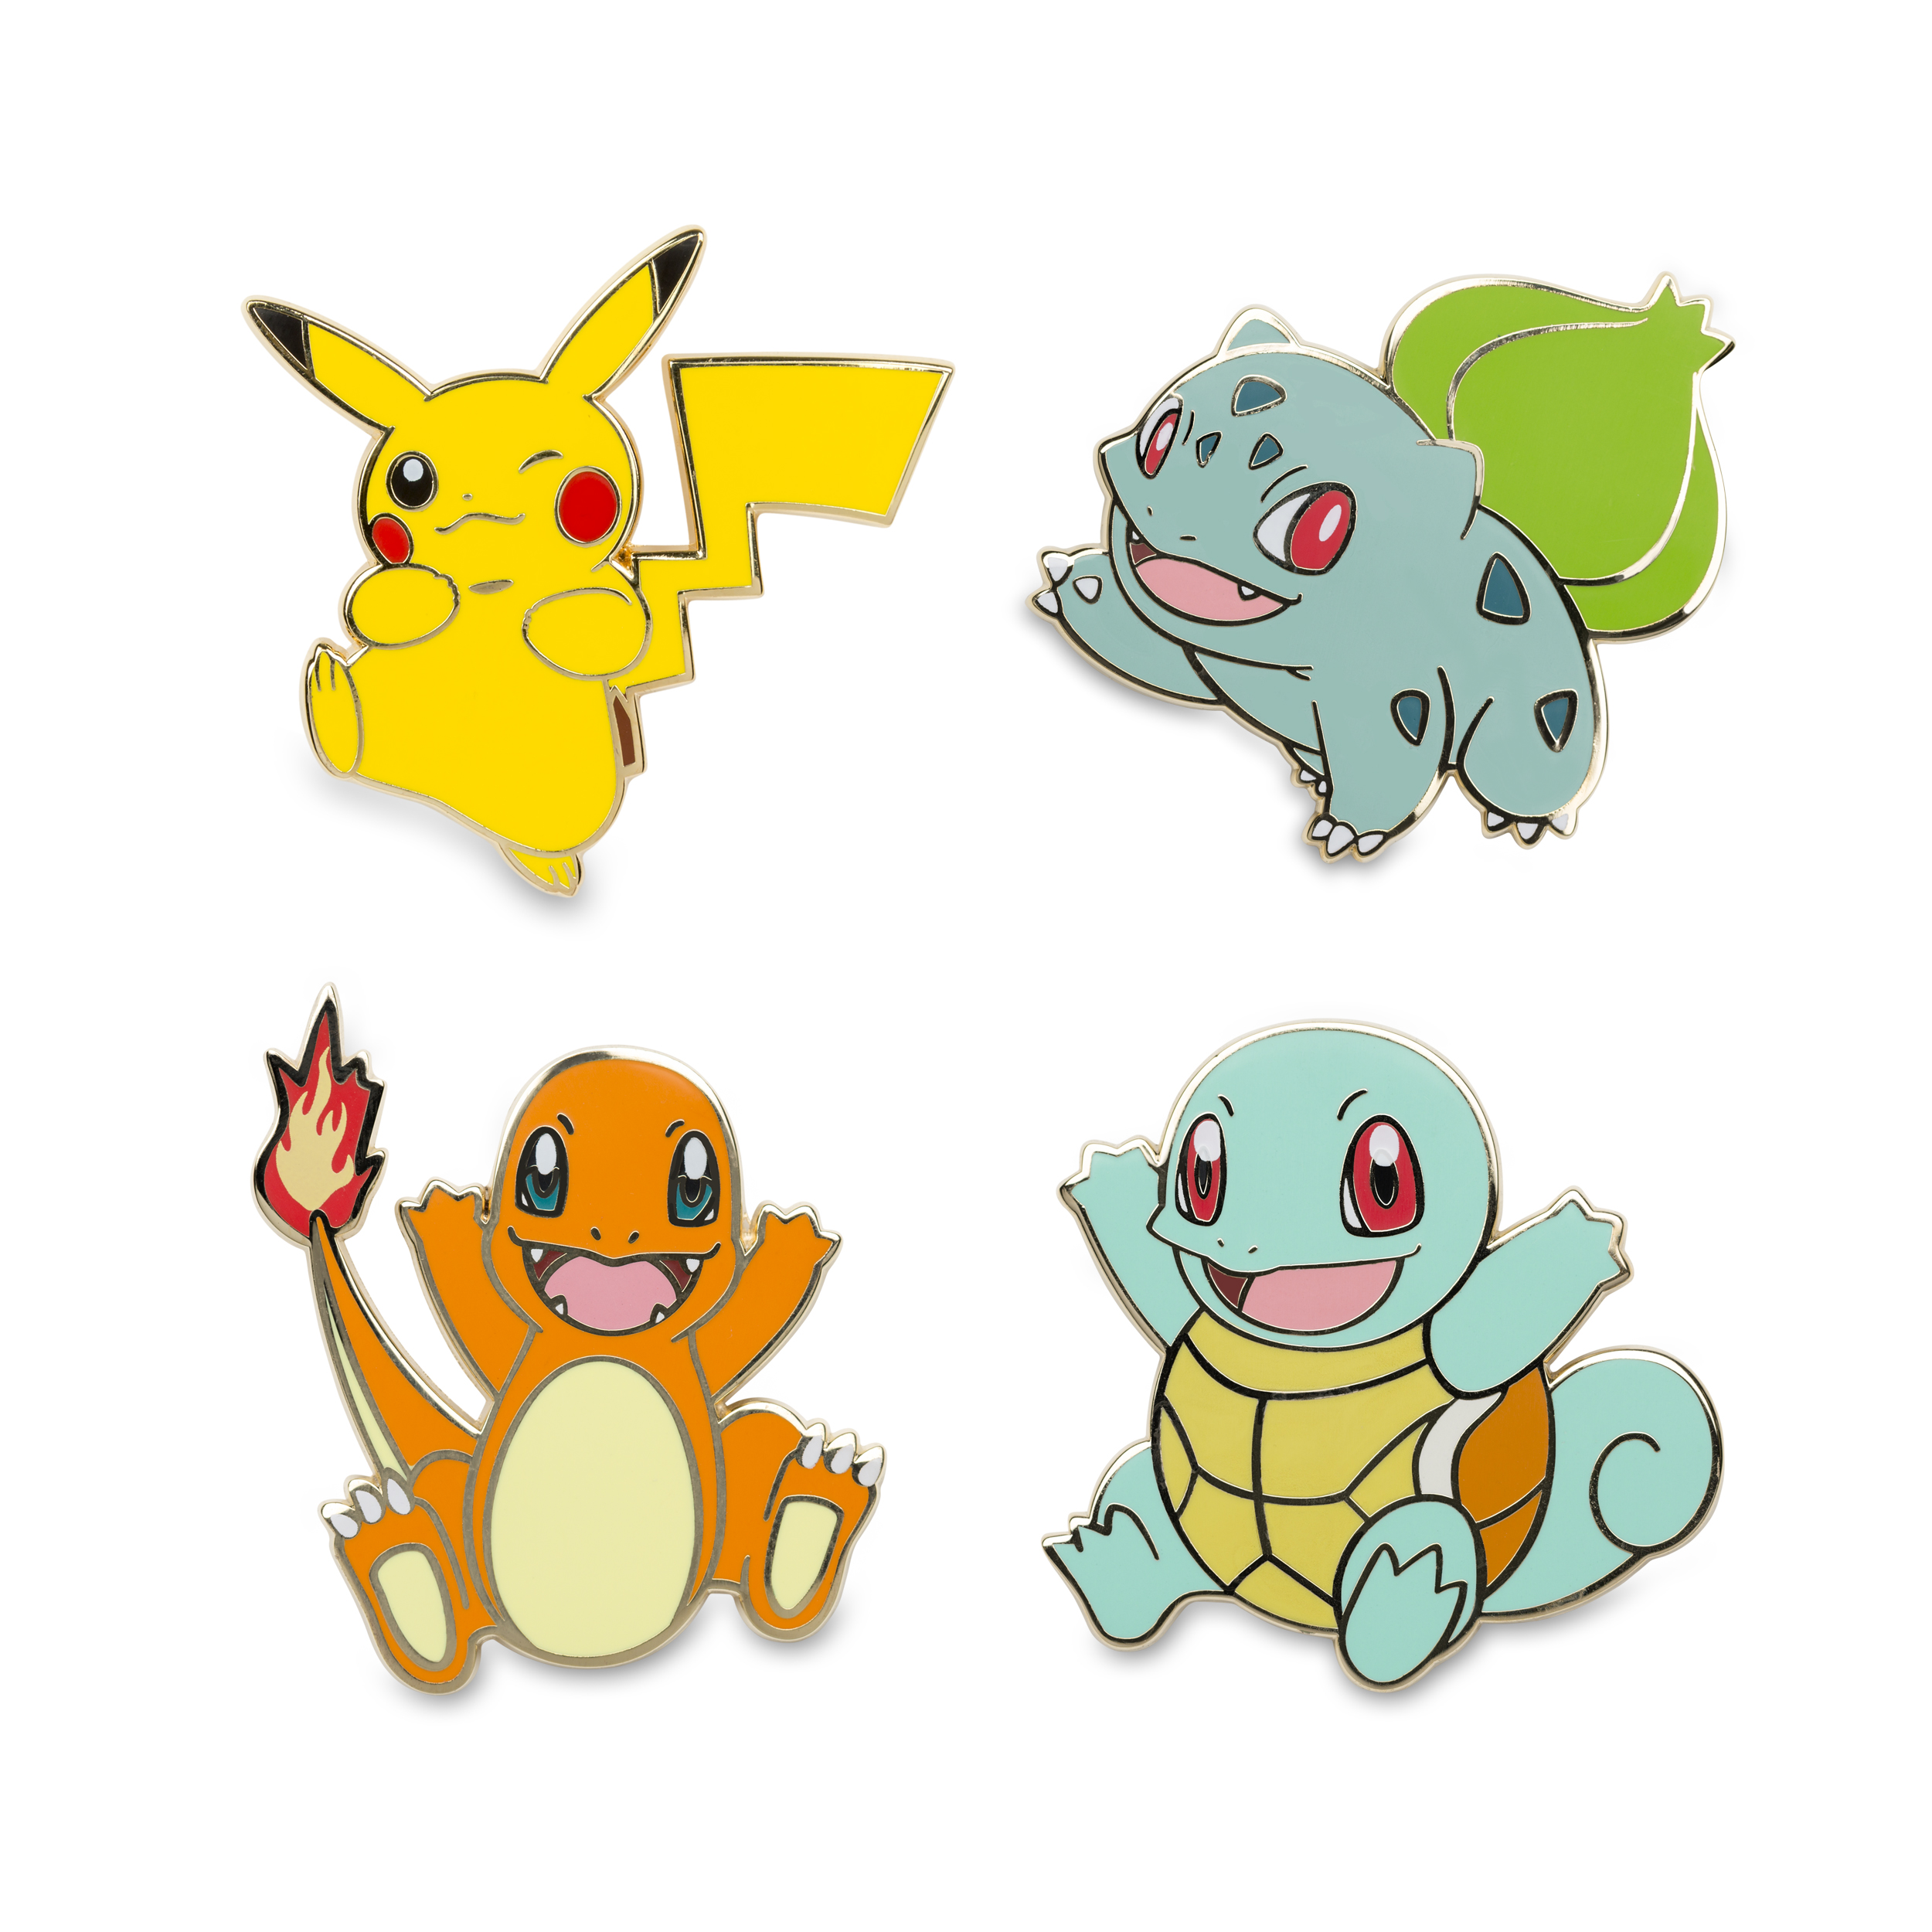 Pikachu Bulbasaur Charmander Squirtle | Pokémon Pins | pin ...